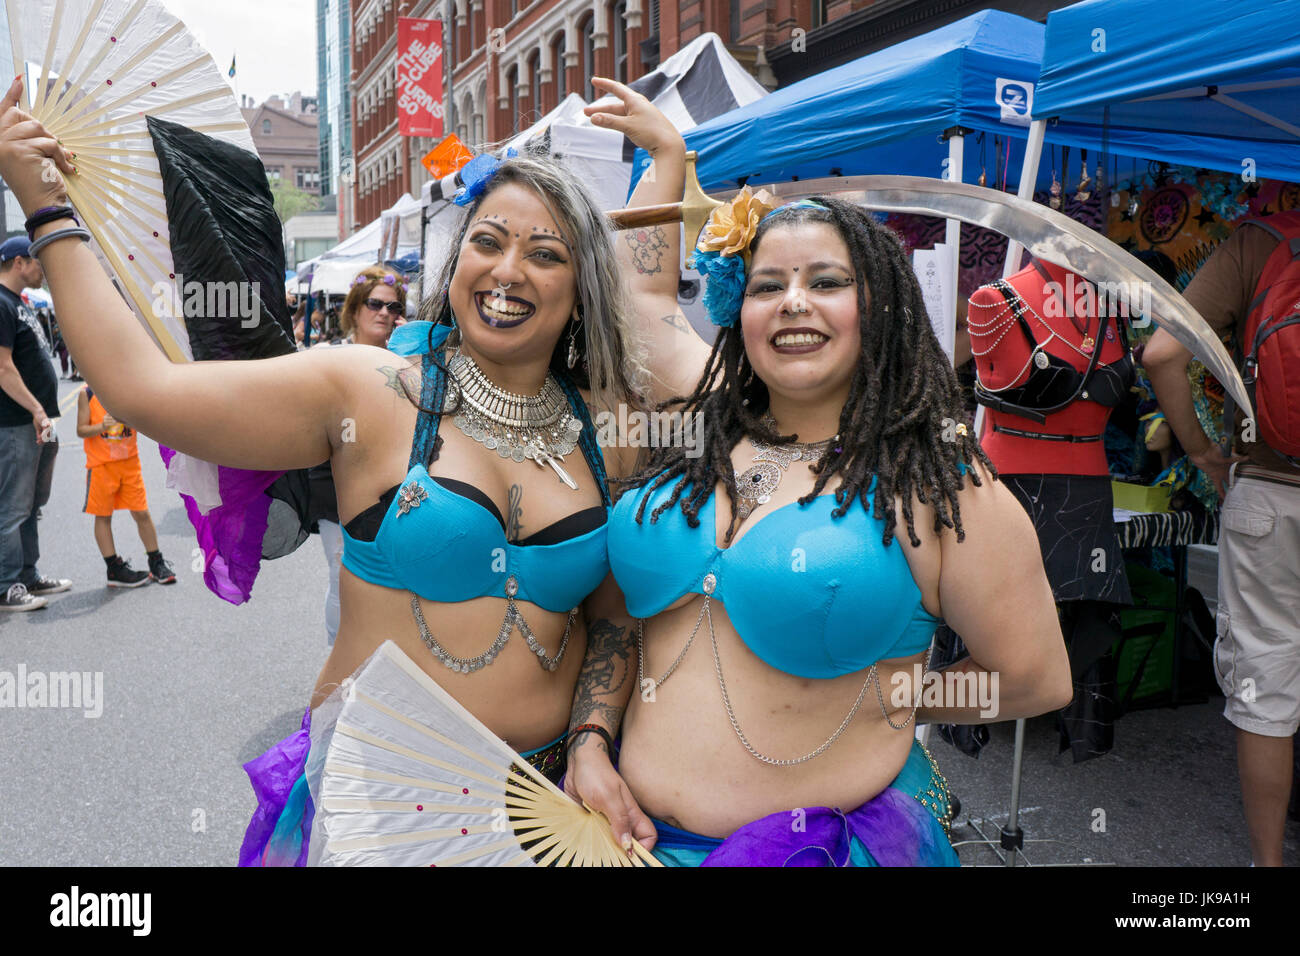 Two belly dancers in the same outfits pose for a photo at Witchsfest on Astor Place in Greenwich Village, New York - Stock Image